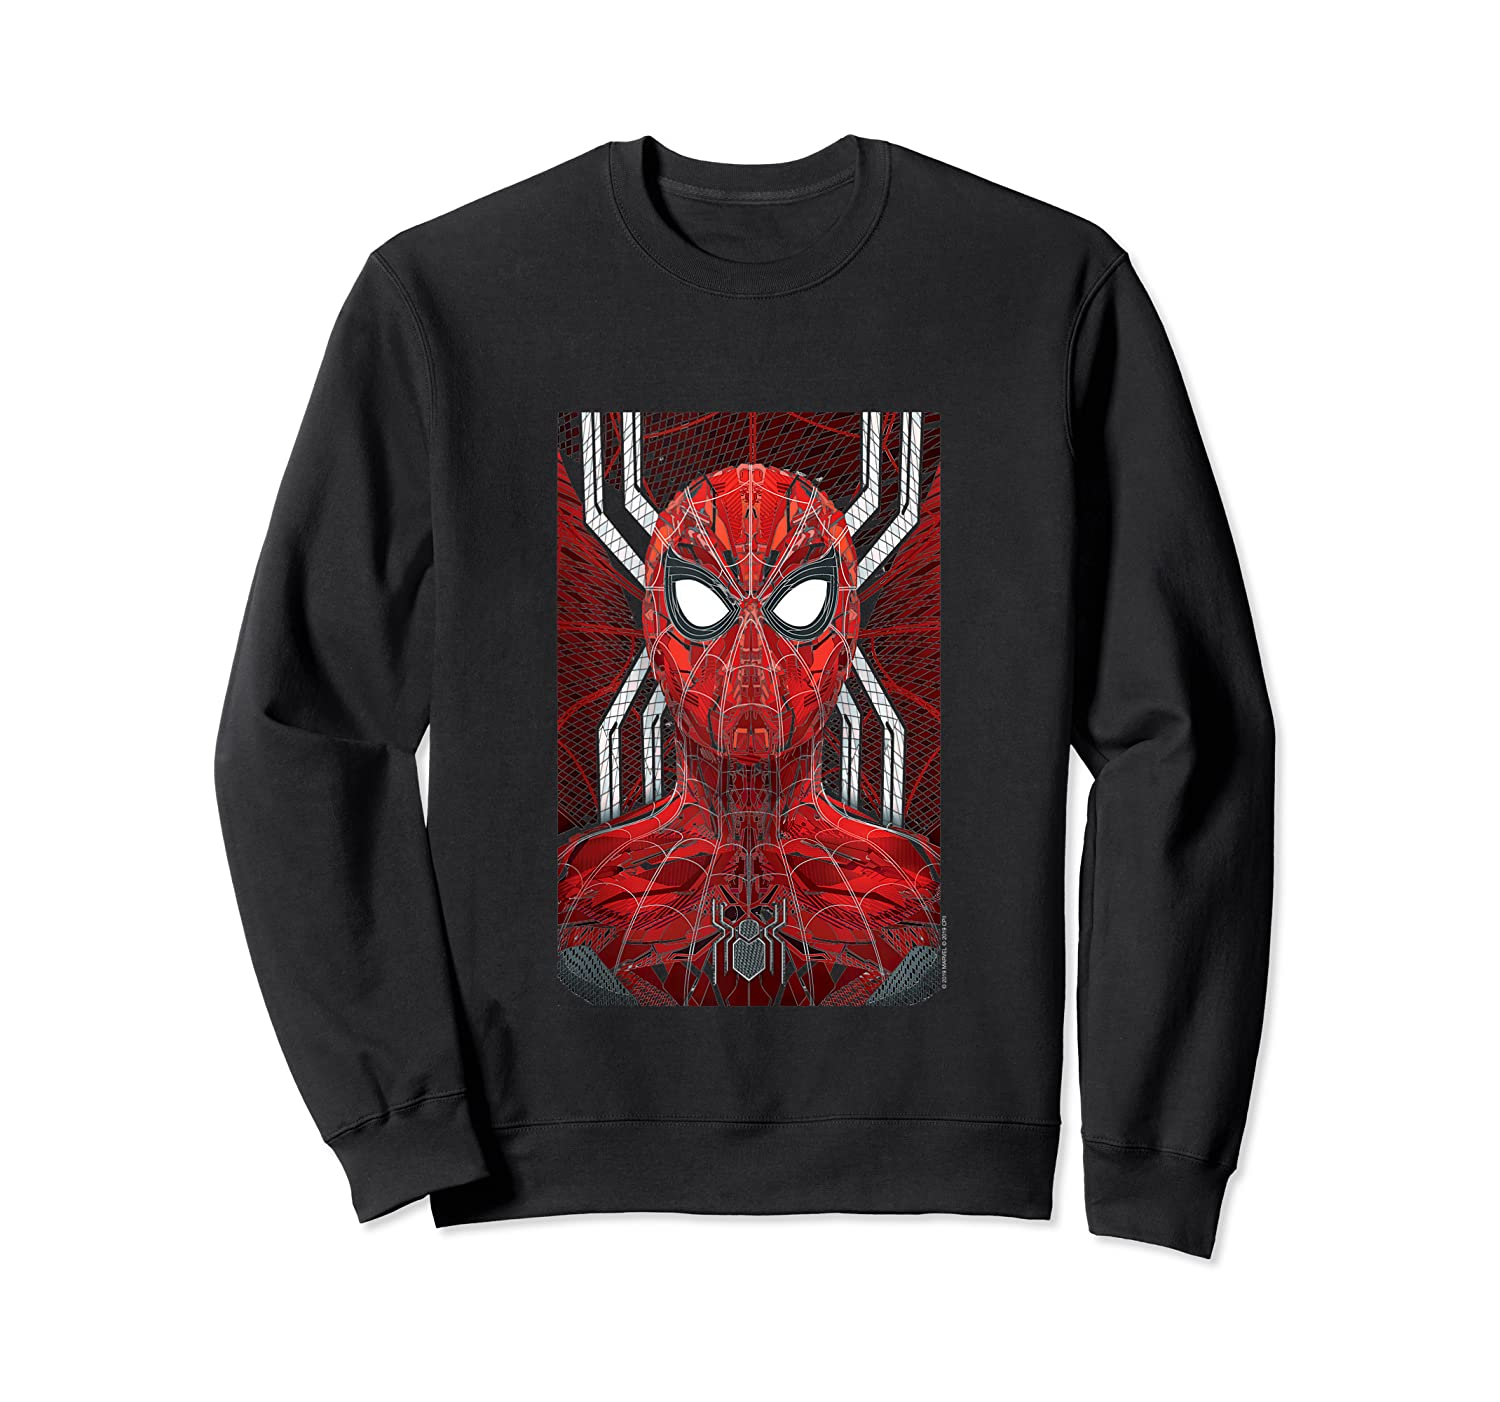 Marvel Spider-man: Far From Home Spidey Tank Top Shirts Crewneck Sweater